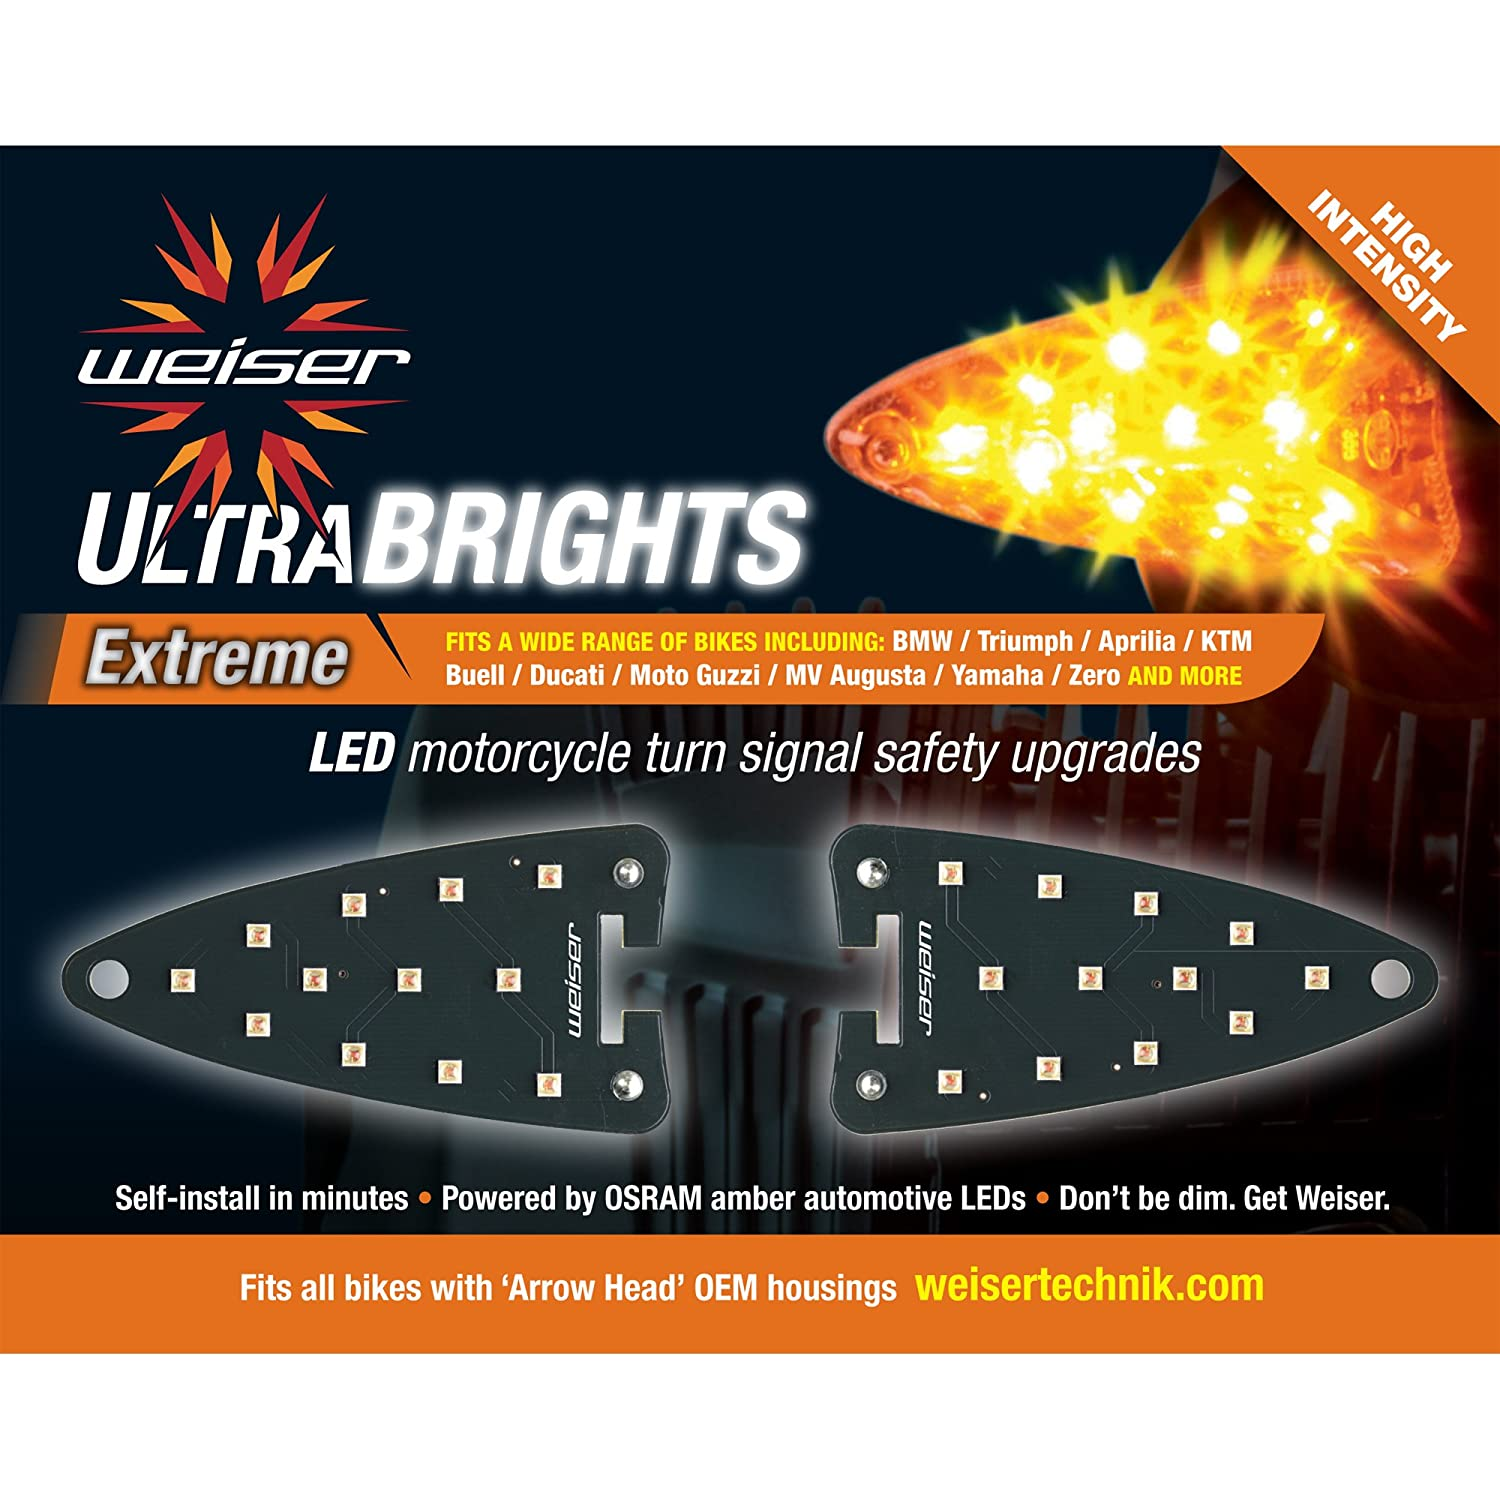 Ultrabrights Extreme LED Turn Signal Upgrades for Aprilia, Triumph, KTM, Buell, Ducati, MV Augusta, Moto Guzzi, Triumph, Yamaha and Zero Motorcycles Weiser Technik